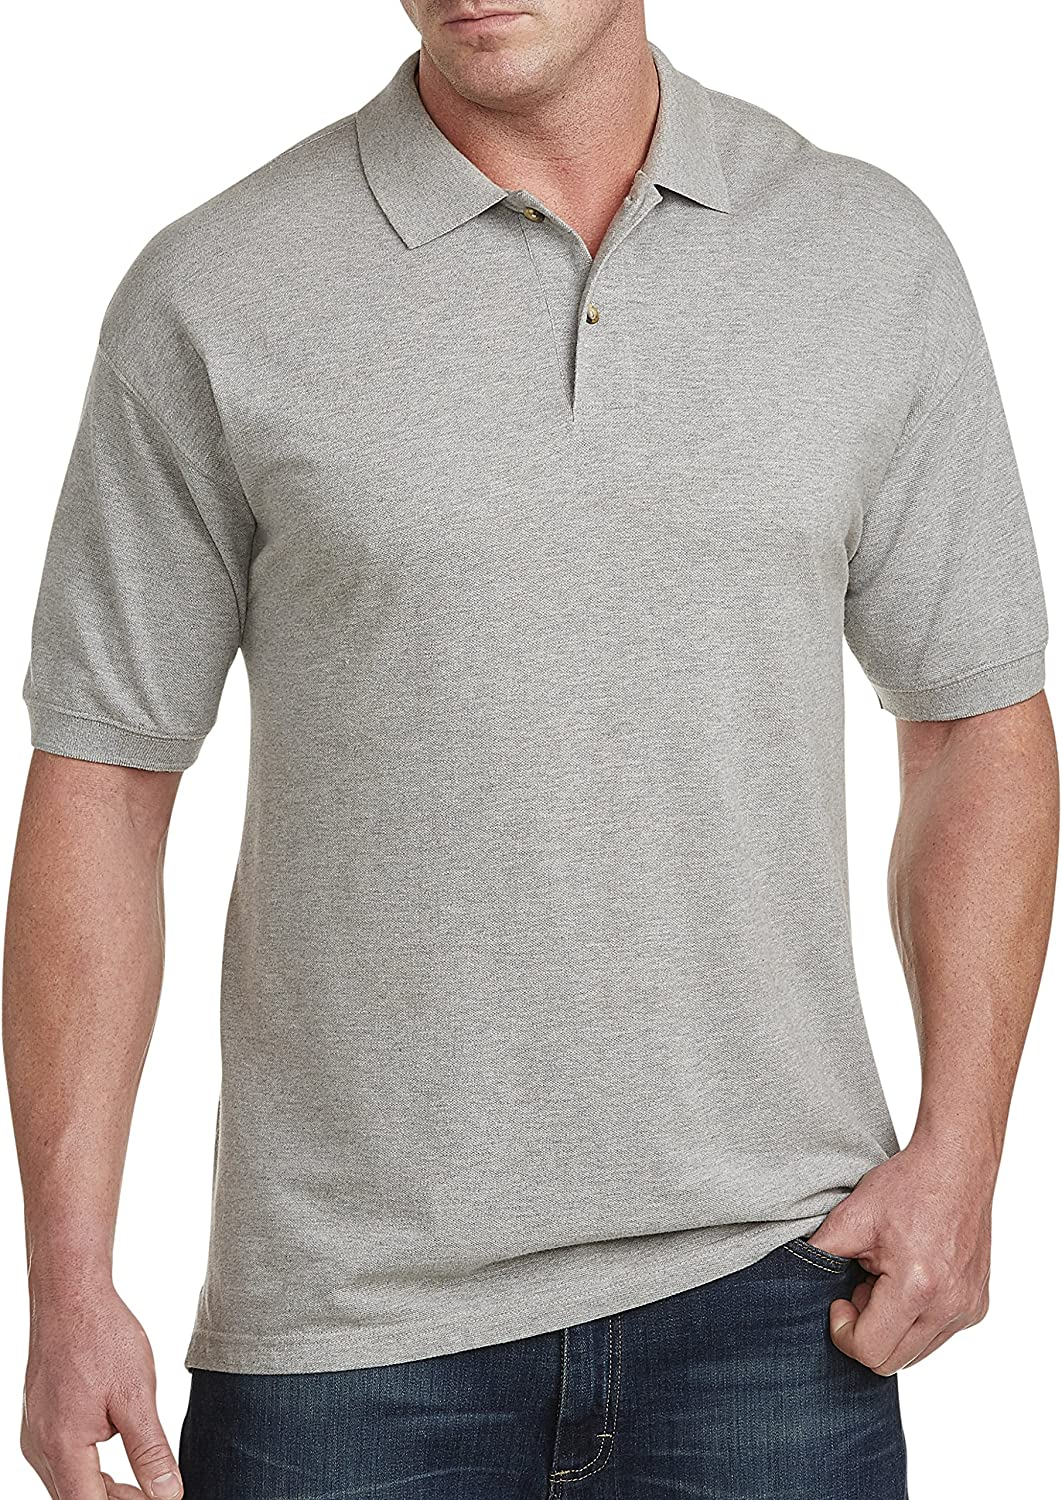 Harbor Bay by DXL Big and Grey Piqué Soldering Tall Limited time sale Heather Shirt Polo